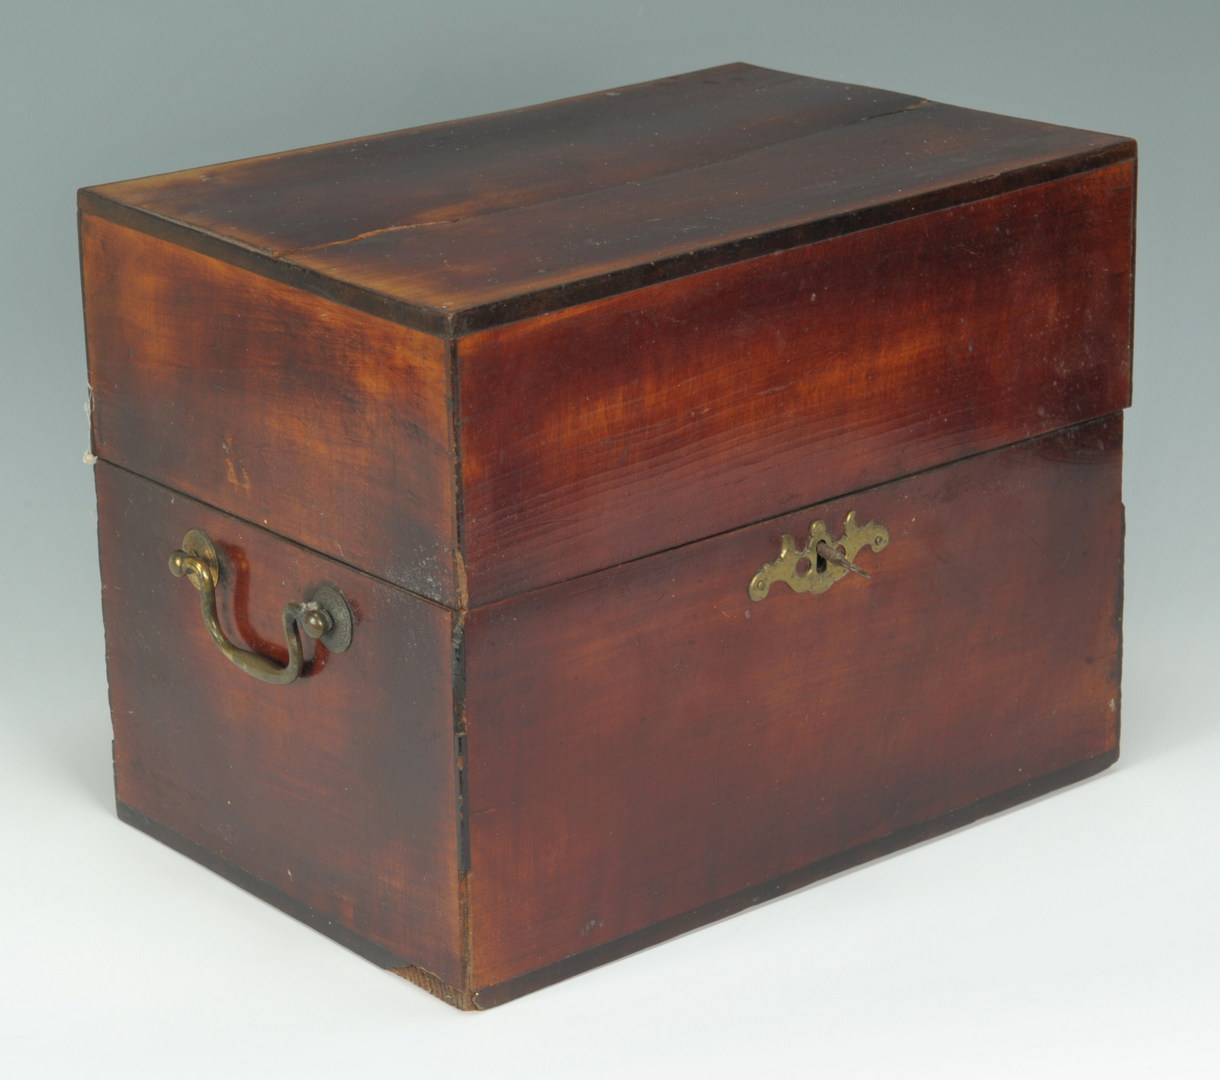 Lot 323: 2 English Boxes, Bottle & Document